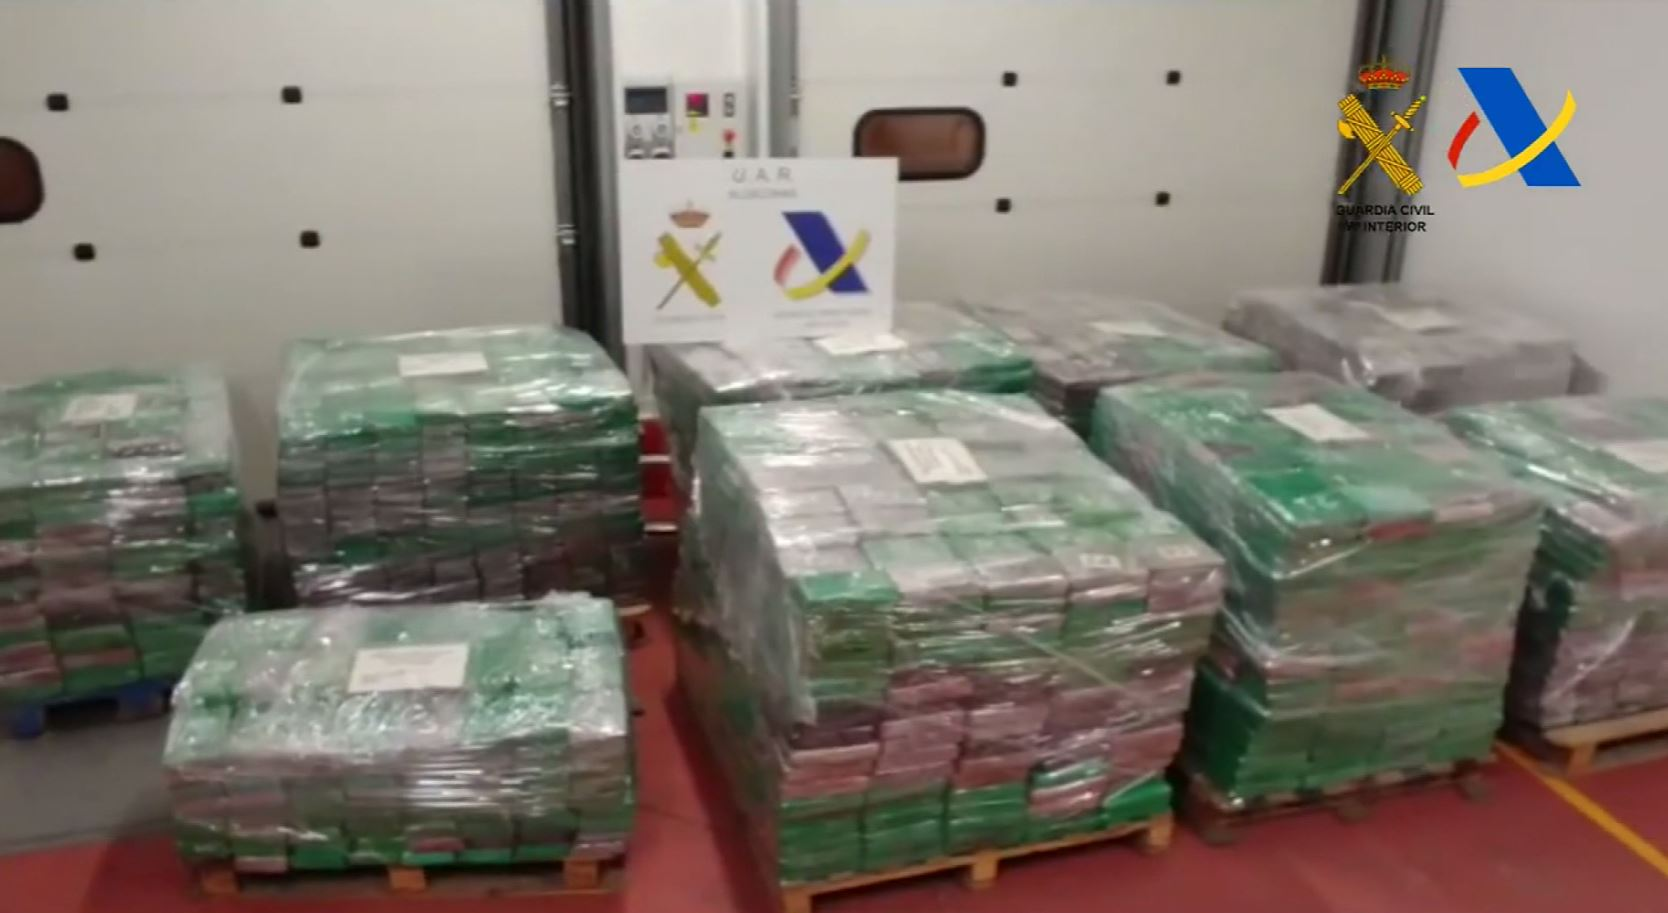 Spain seizes cocaine with street value of $250 million (CIVIL GUARD/CNN Newsource)